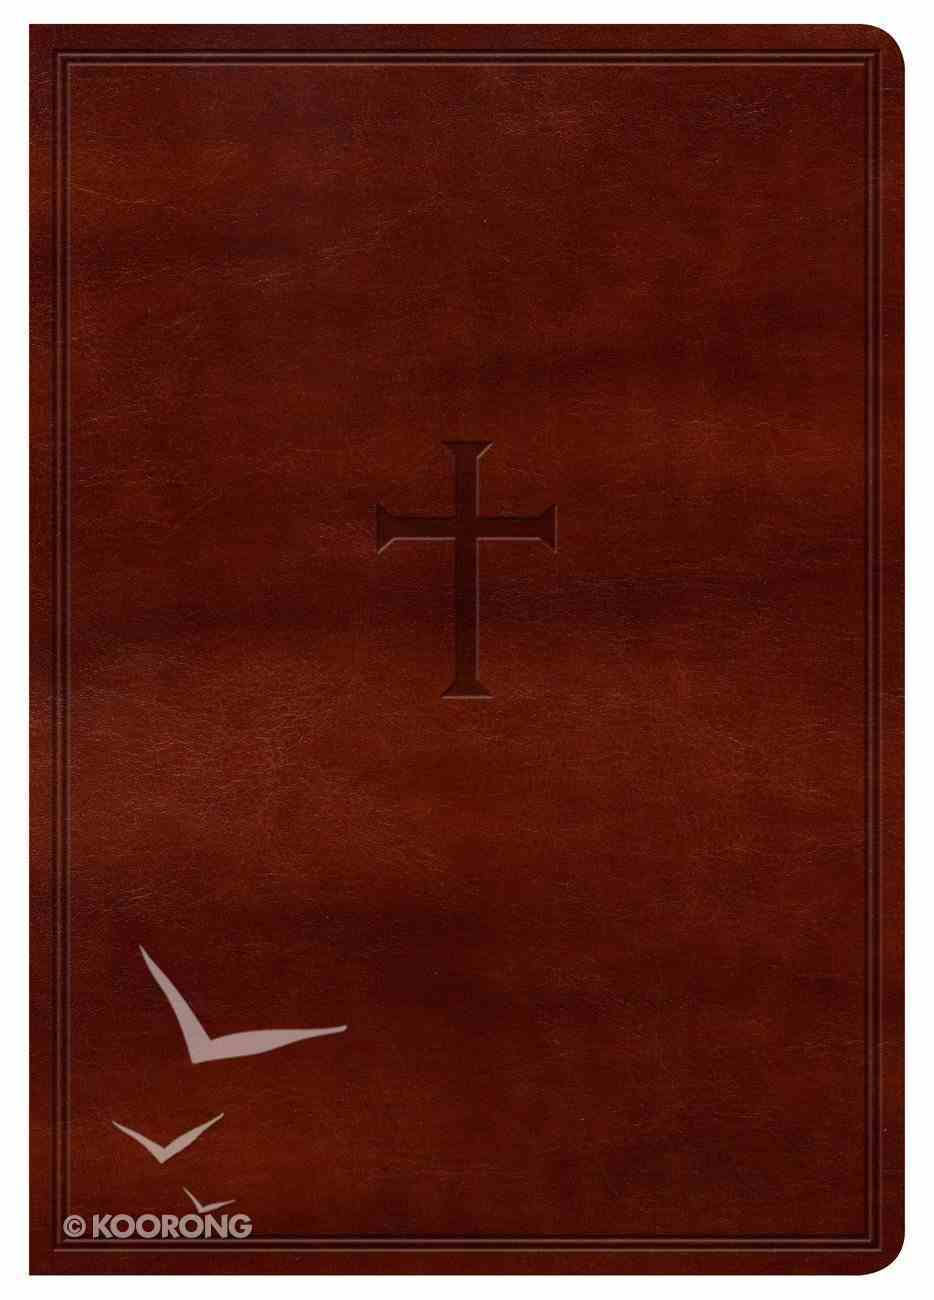 KJV Large Print Compact Reference Bible Indexed Brown Cross Imitation Leather